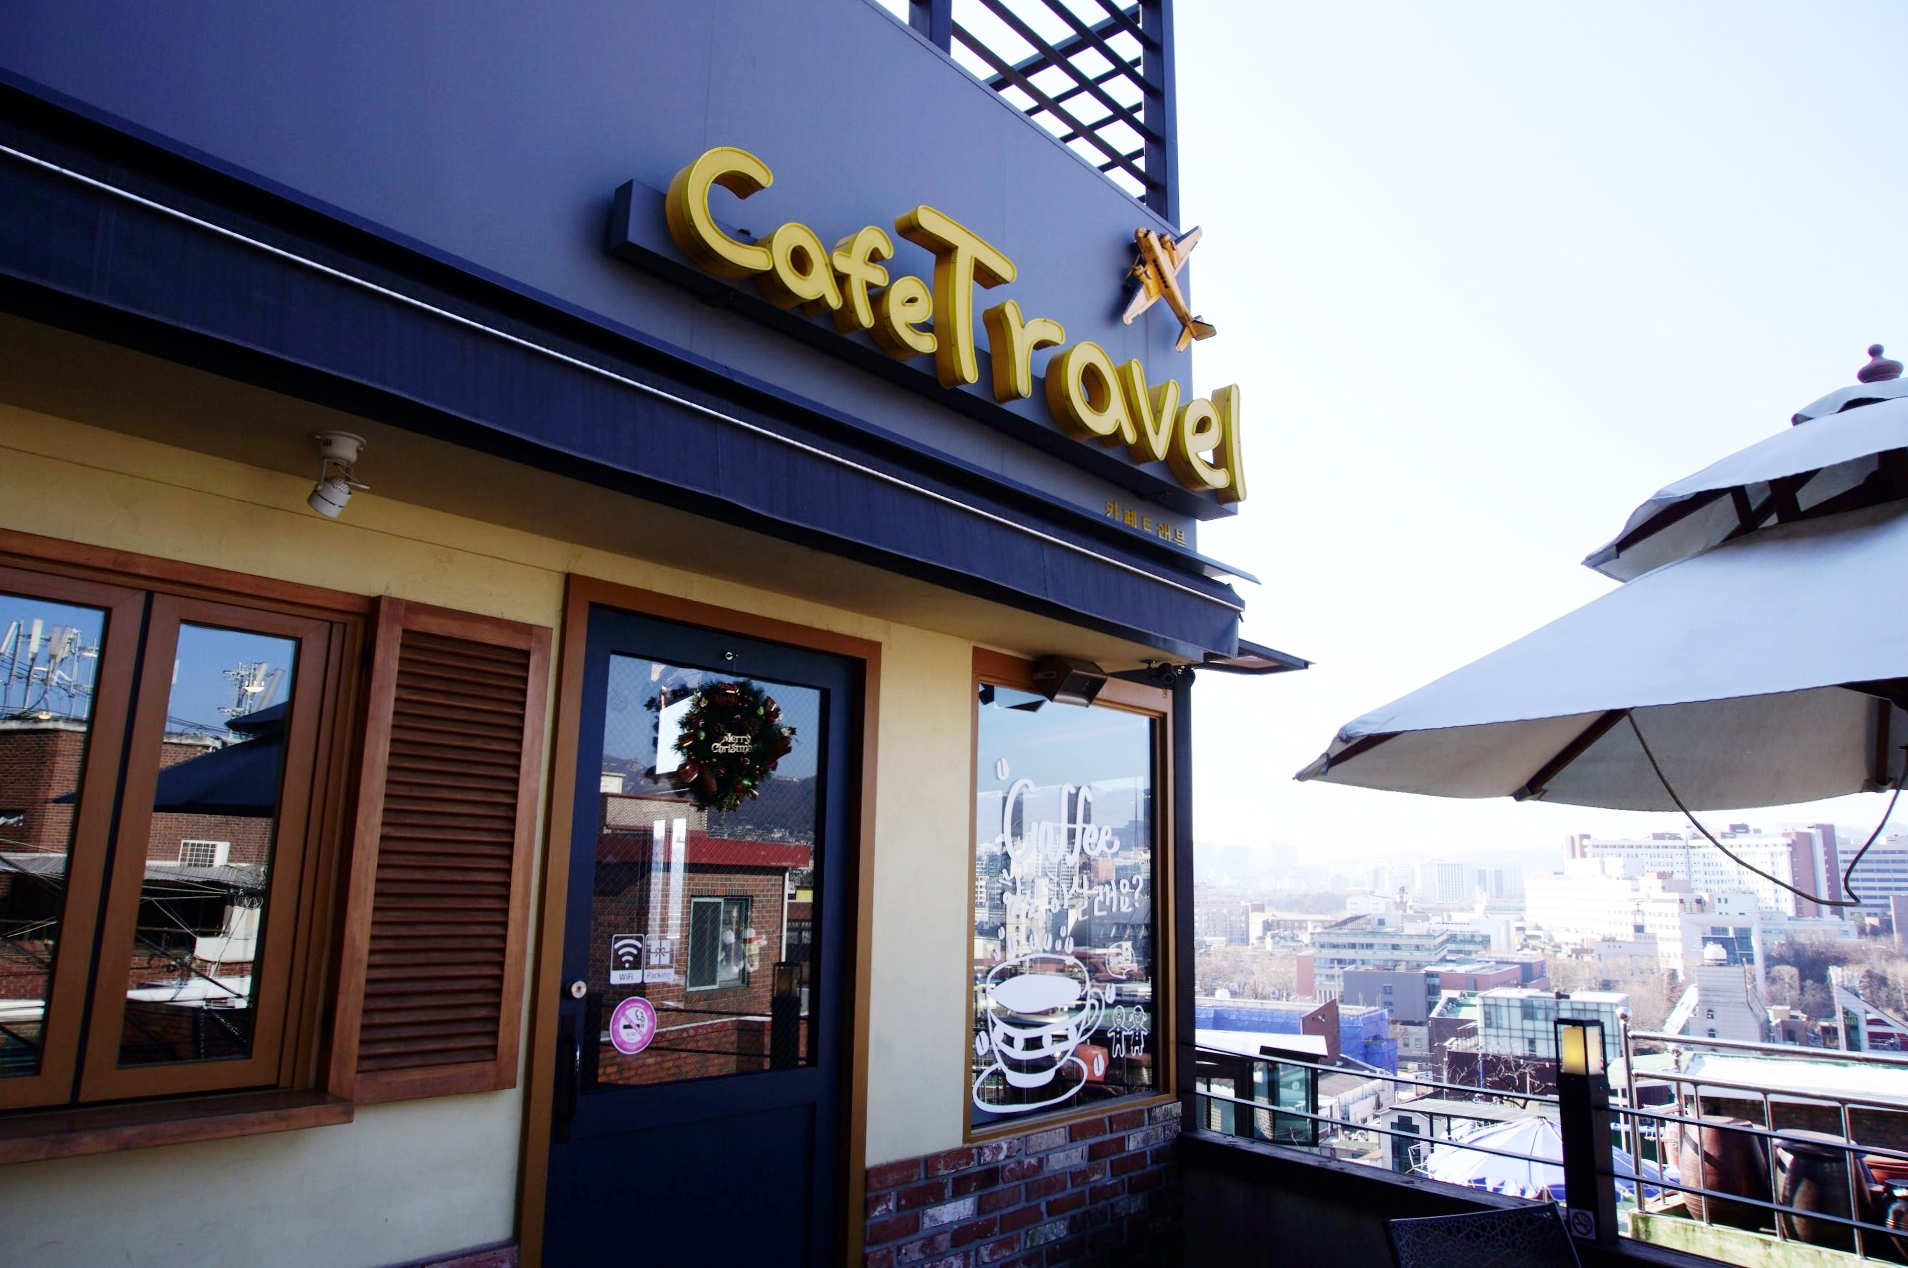 The cafe is called: 카페트레블 / Travel Cafe